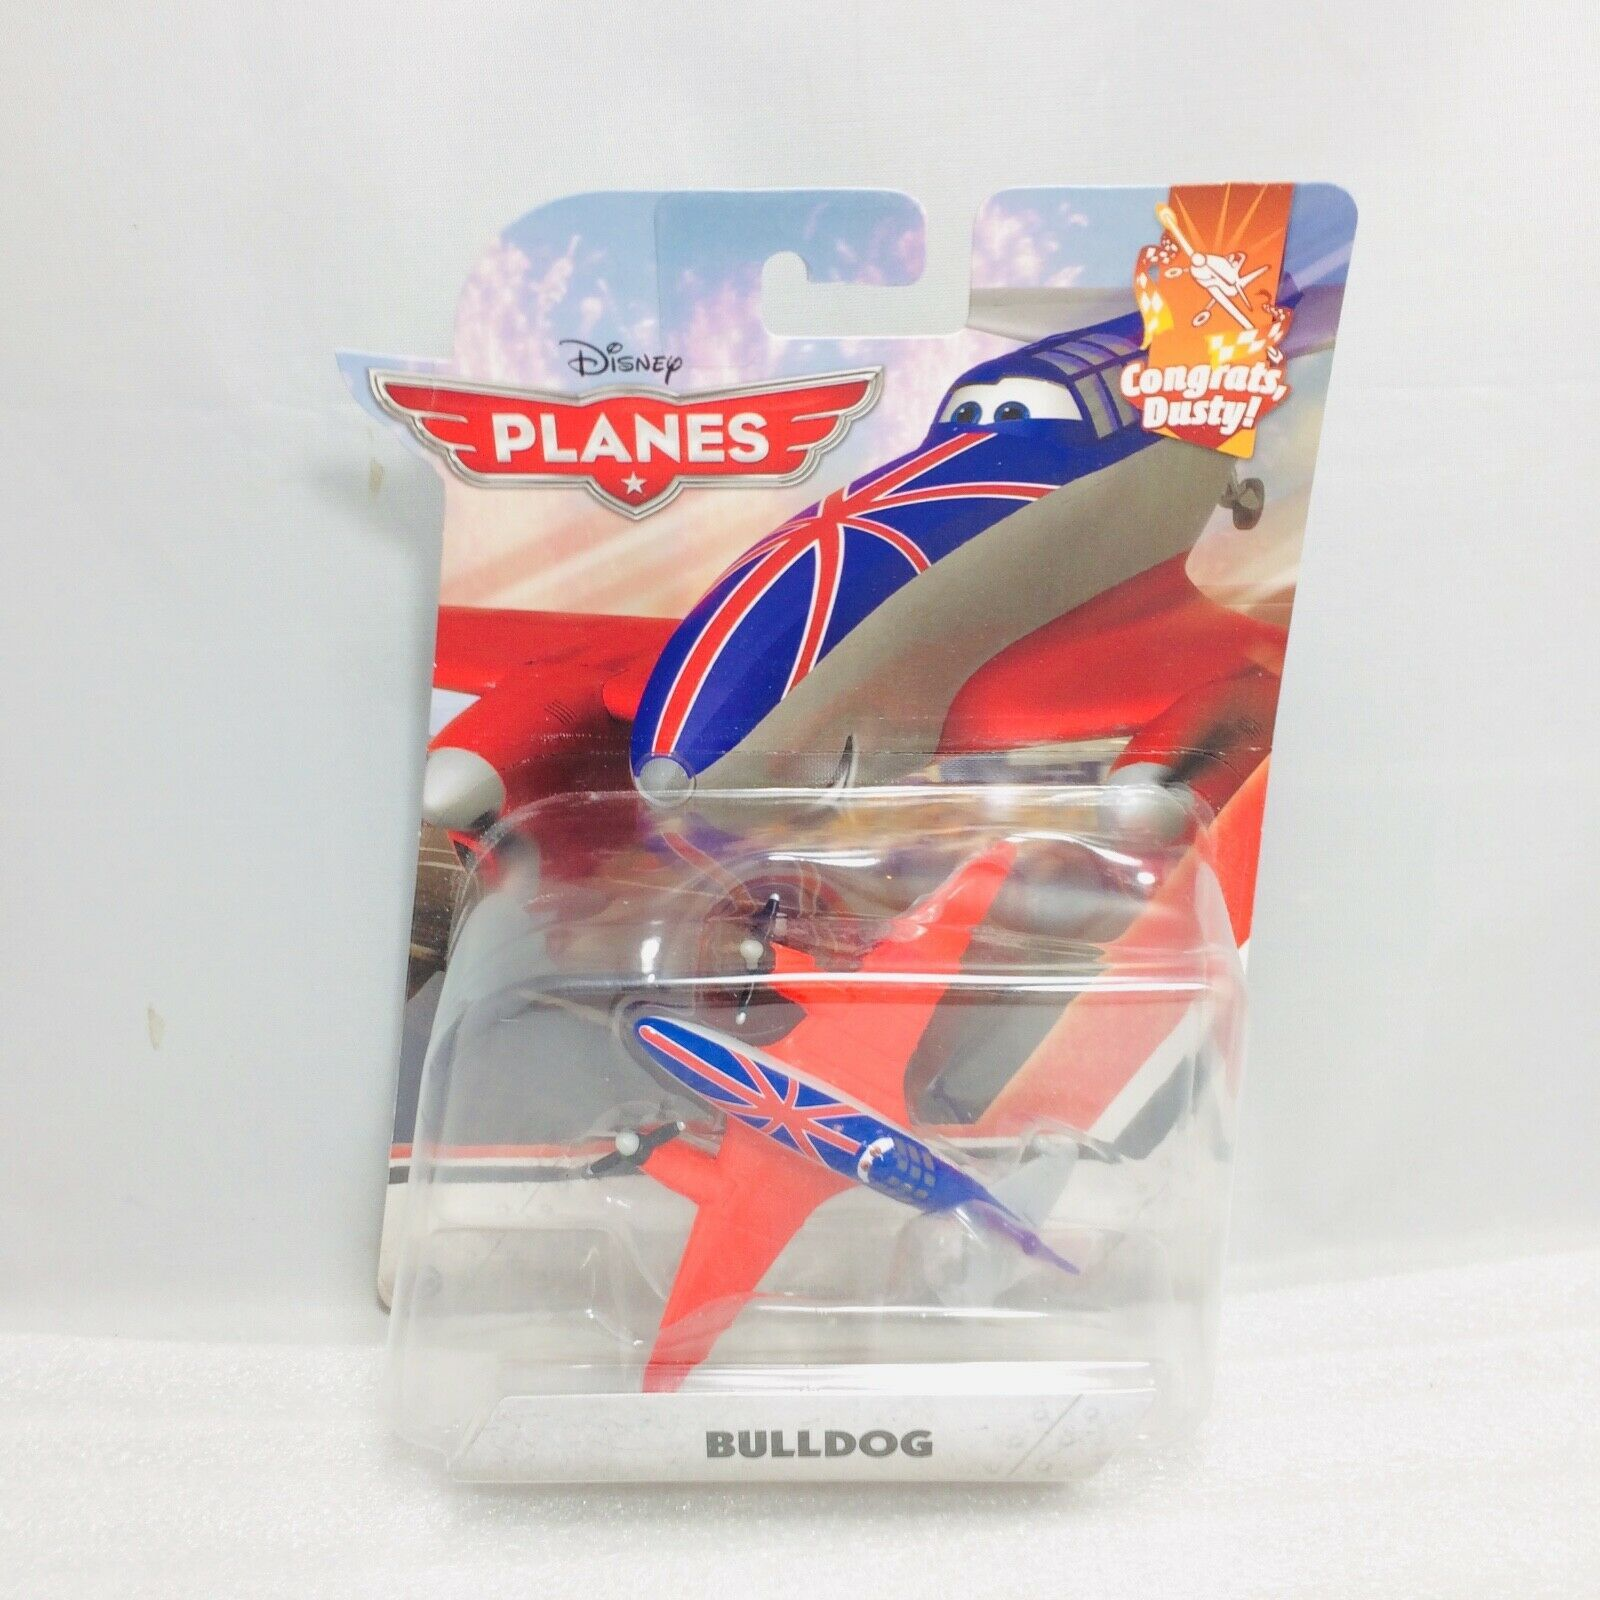 Disney Pixar Planes Bulldog New in Package - 2015 - Rare